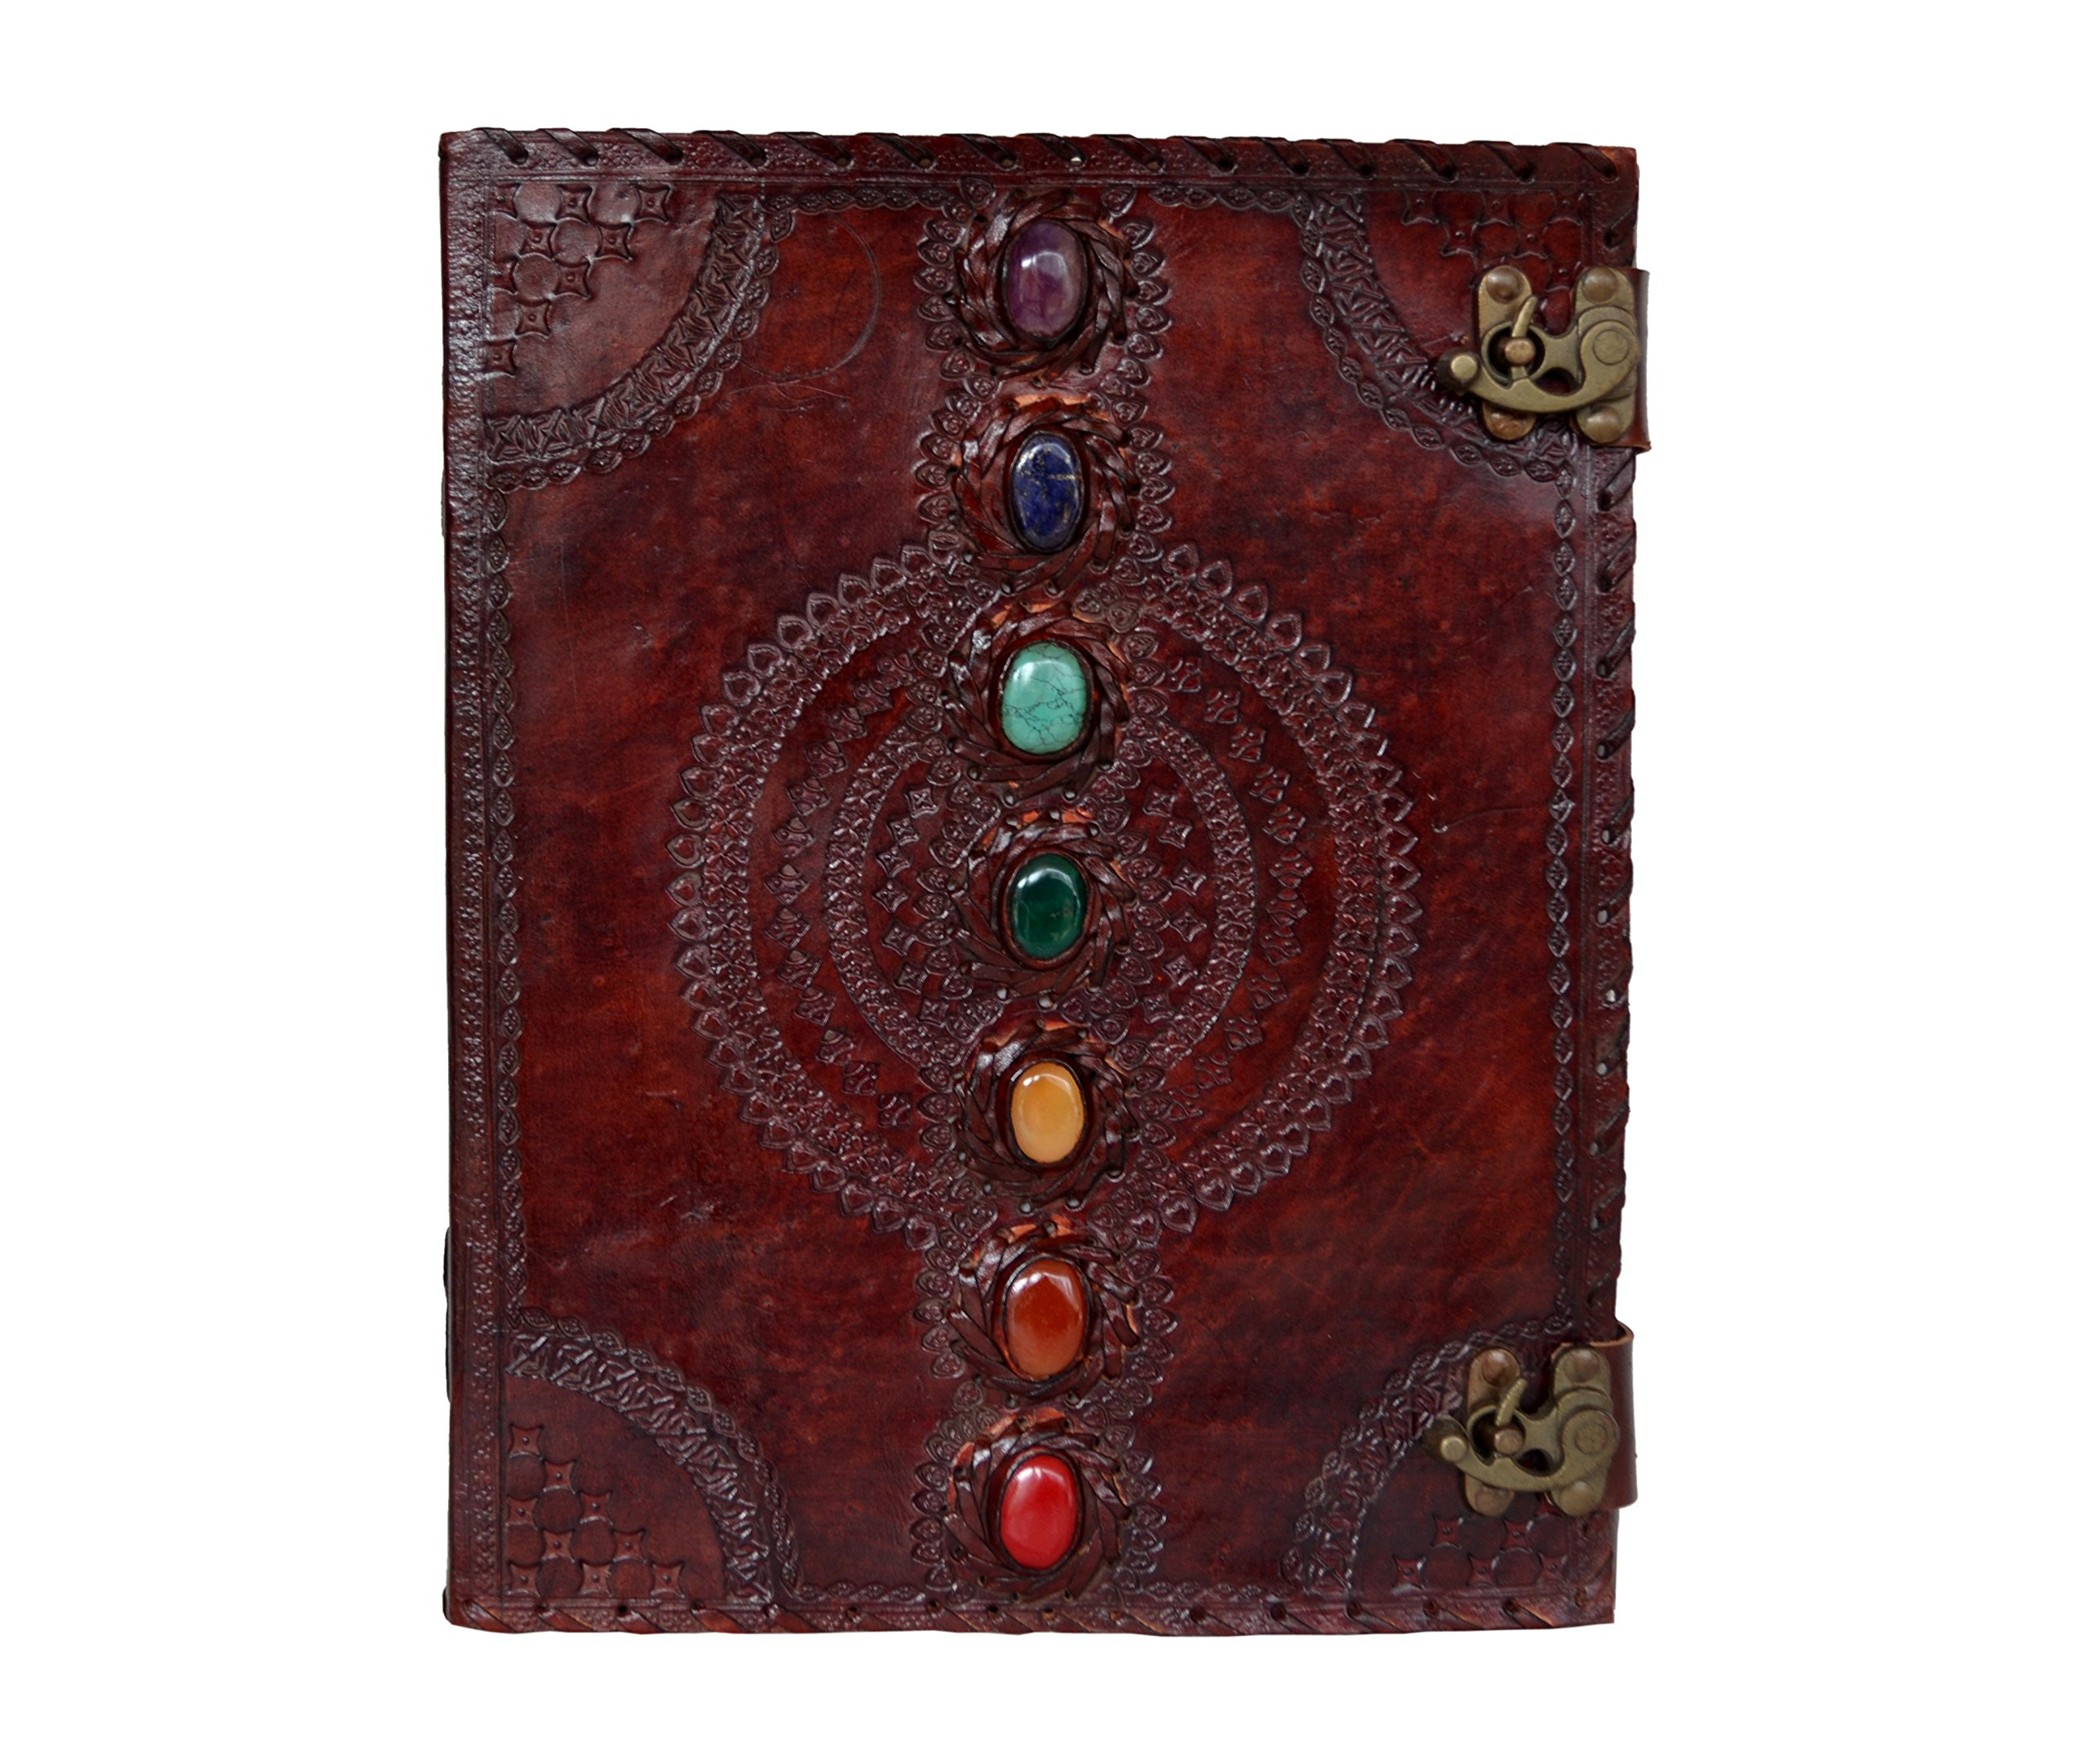 Seven Medieval Stone Chakra Leather Journal Embossed Handmade Book of Shadows Notebook Office Diary College Book Poetry Book Sketch Book 10 x 13 Inches